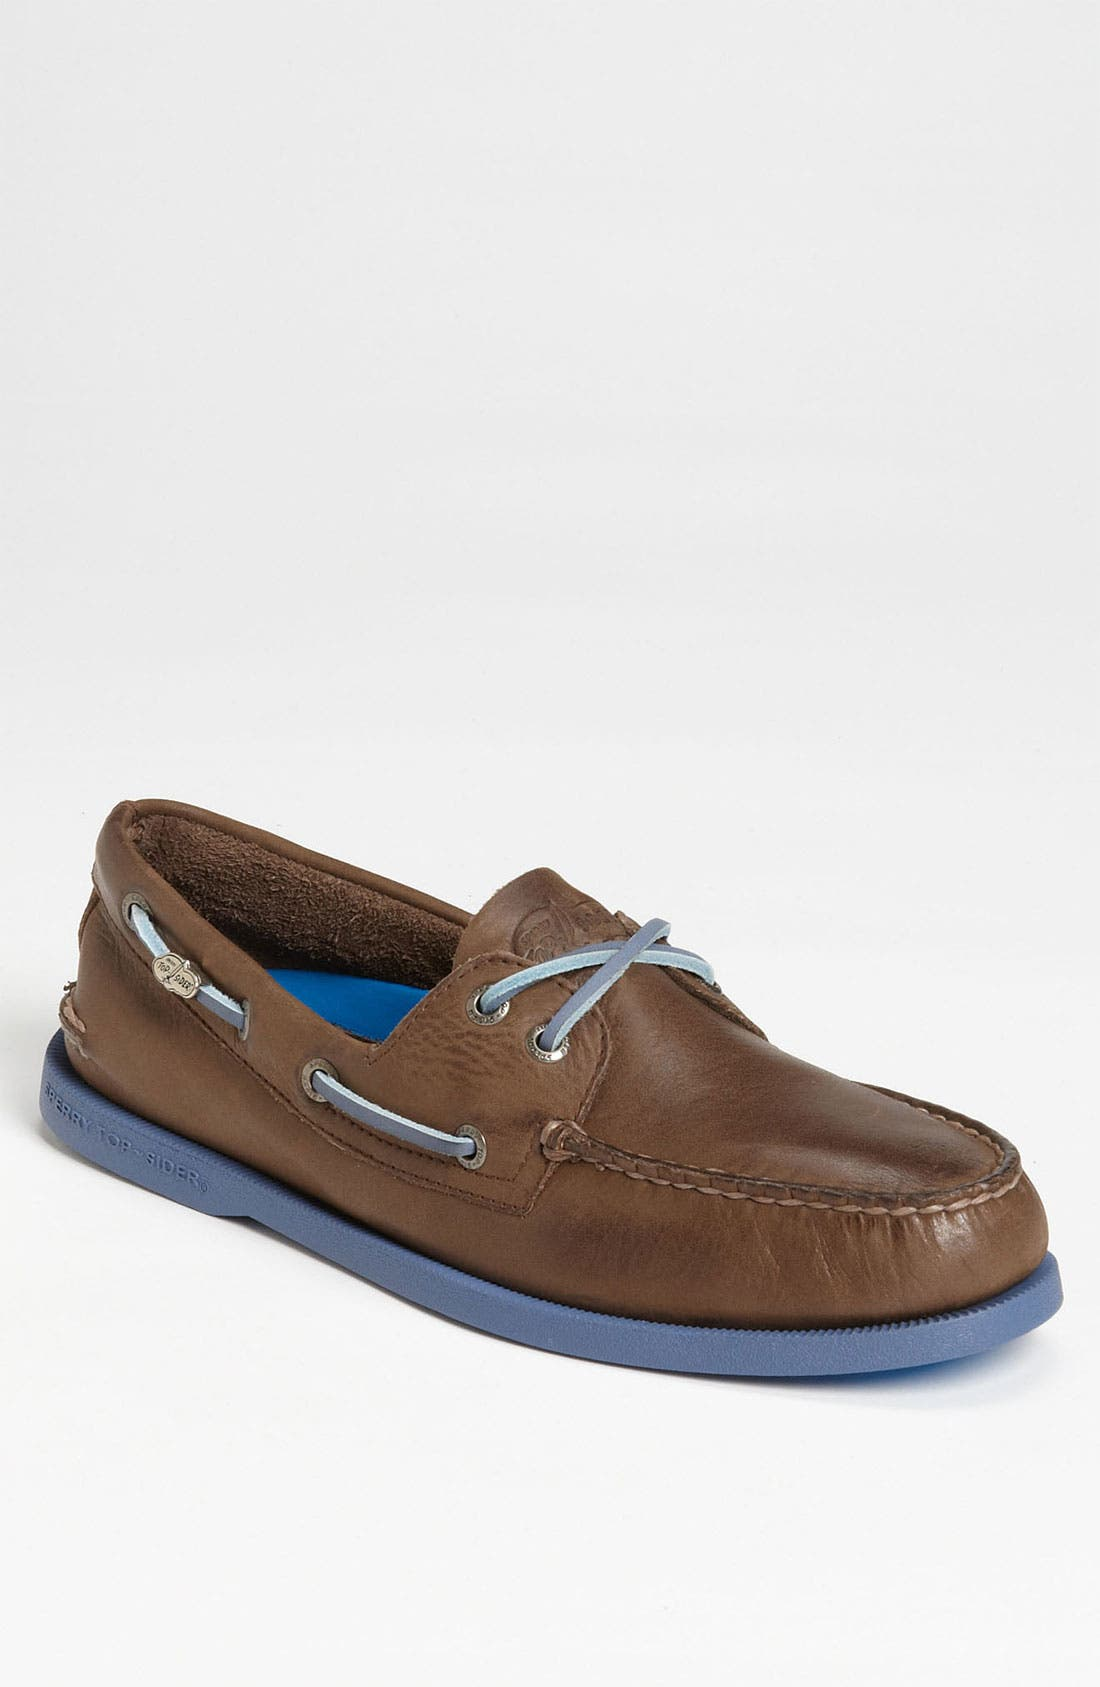 Alternate Image 1 Selected - Sperry Top-Sider® 'Authentic Original' Burnished Boat Shoe